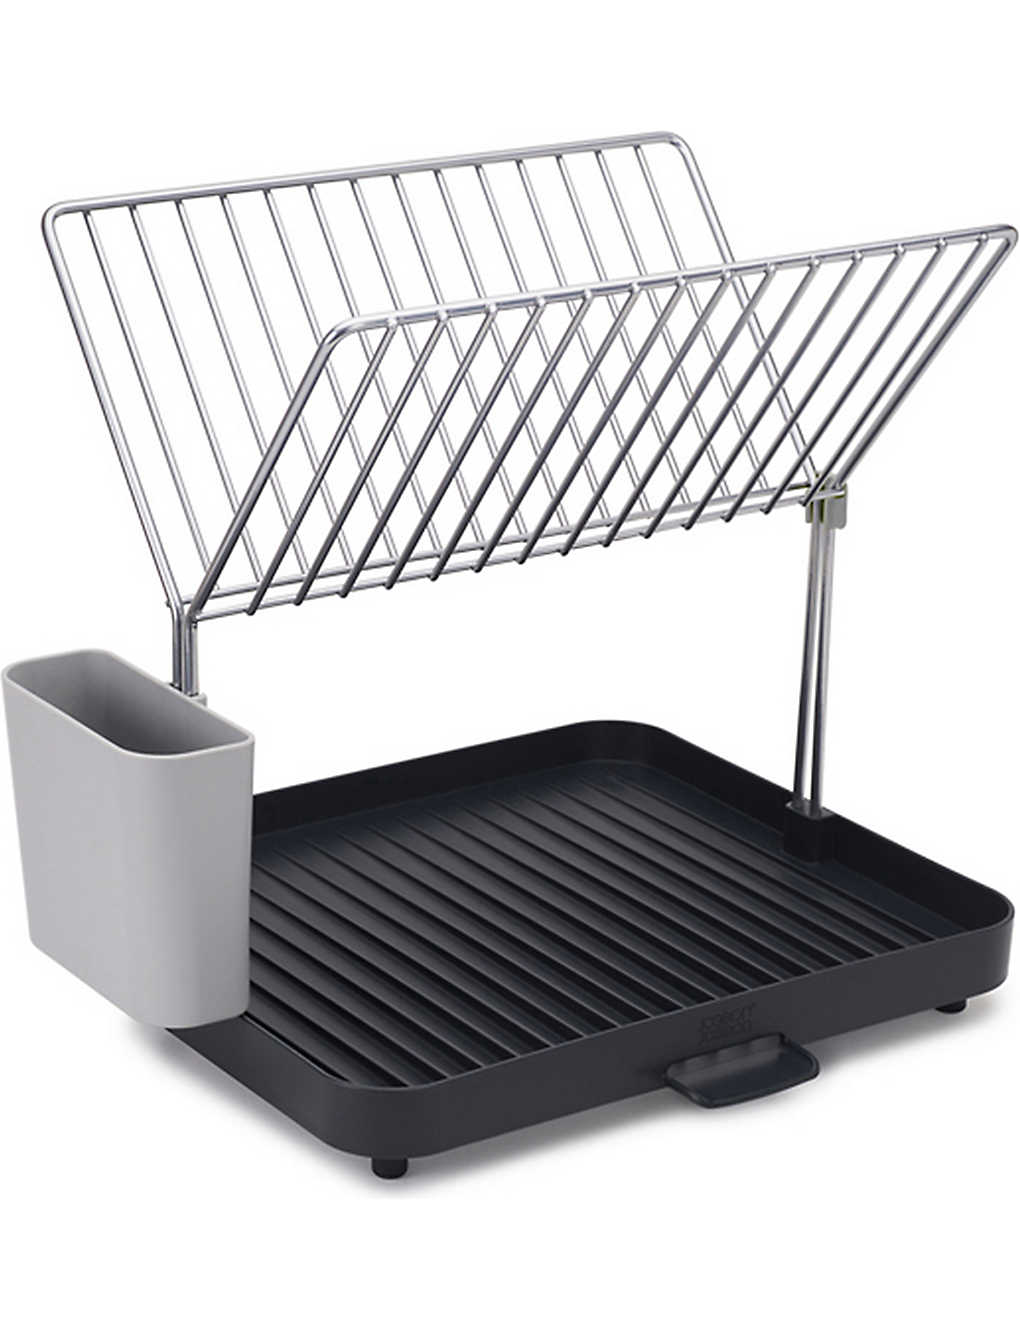 JOSEPH JOSEPH: Y-Rack self-draining dish rack